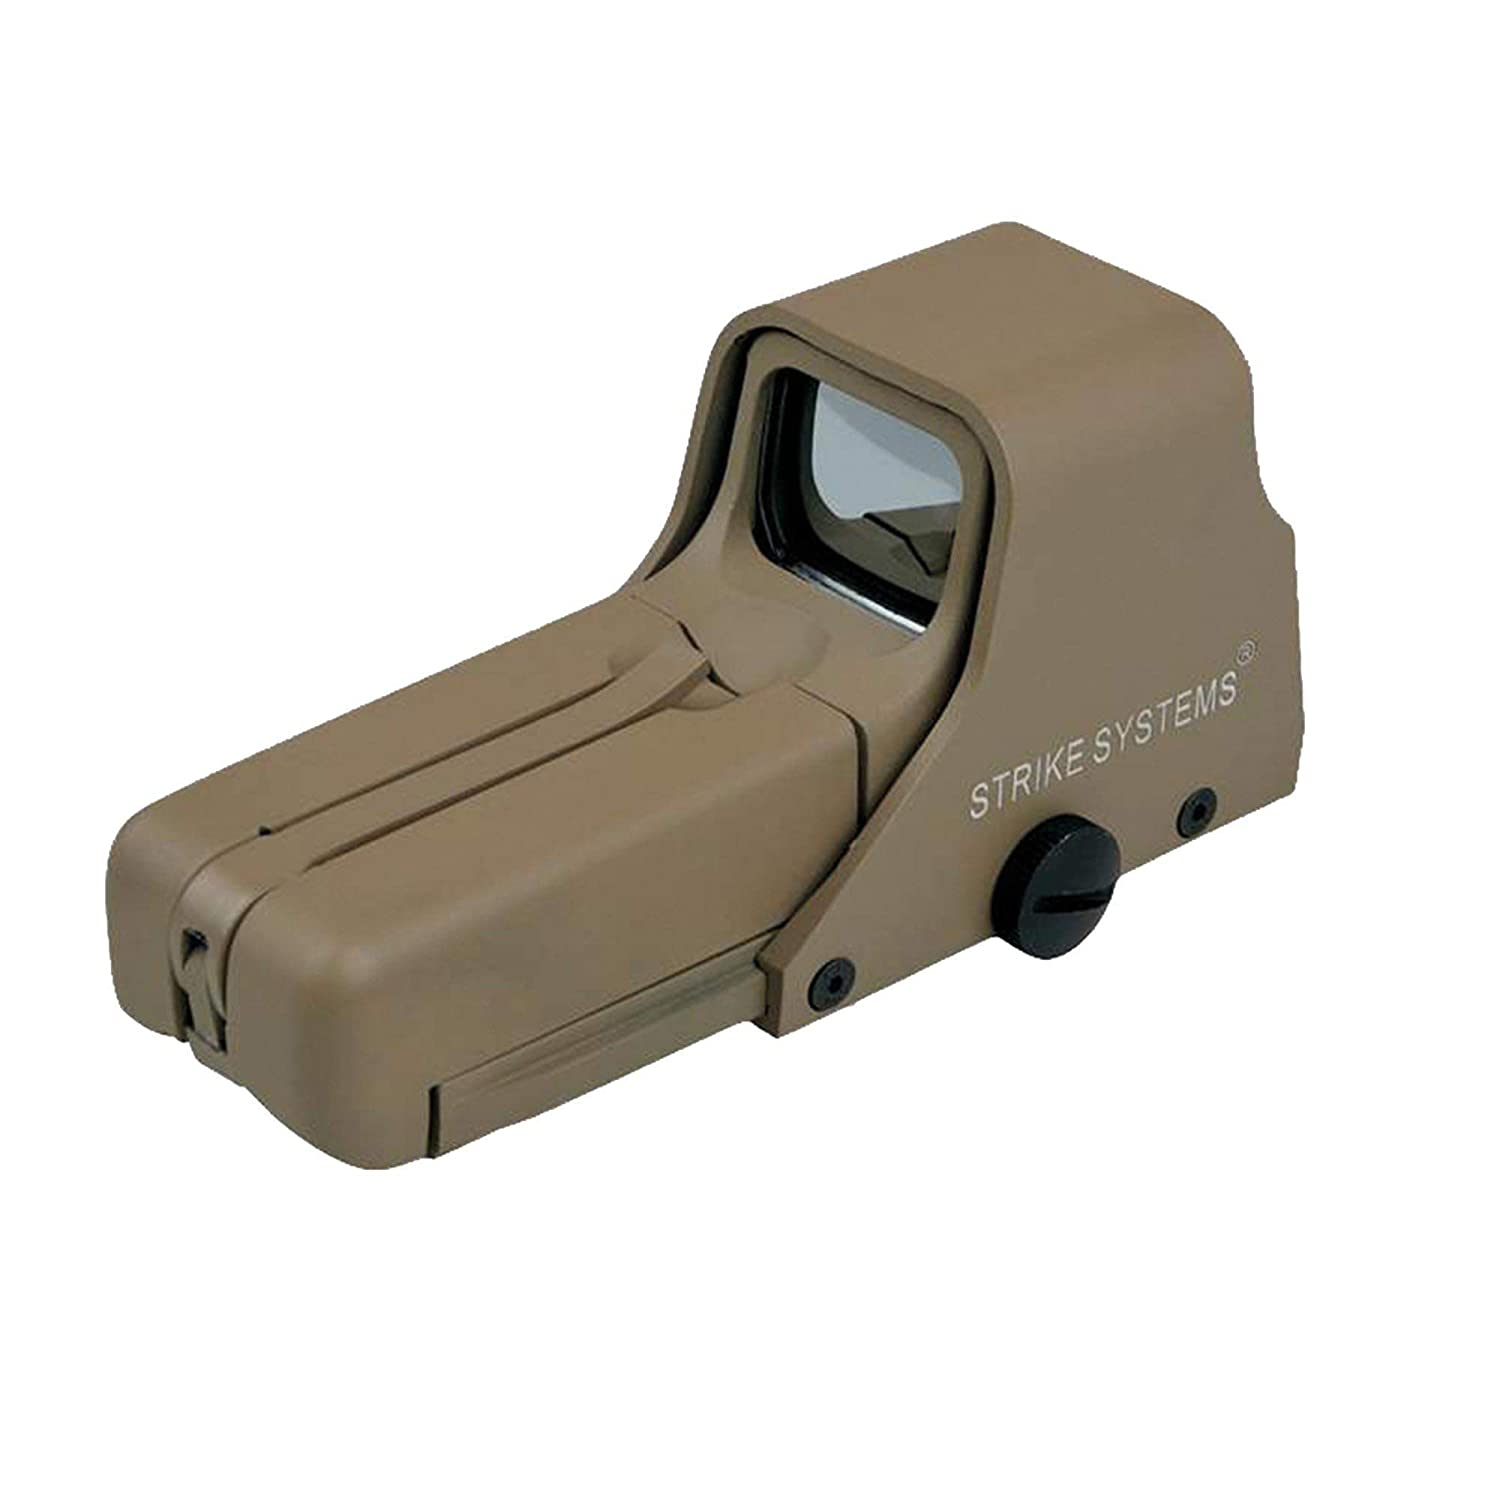 STRIKE SYSTEMS TAN HOLO SCOPE 552 RED DOT SCOPE AIRSOFT SCOPE theta optics